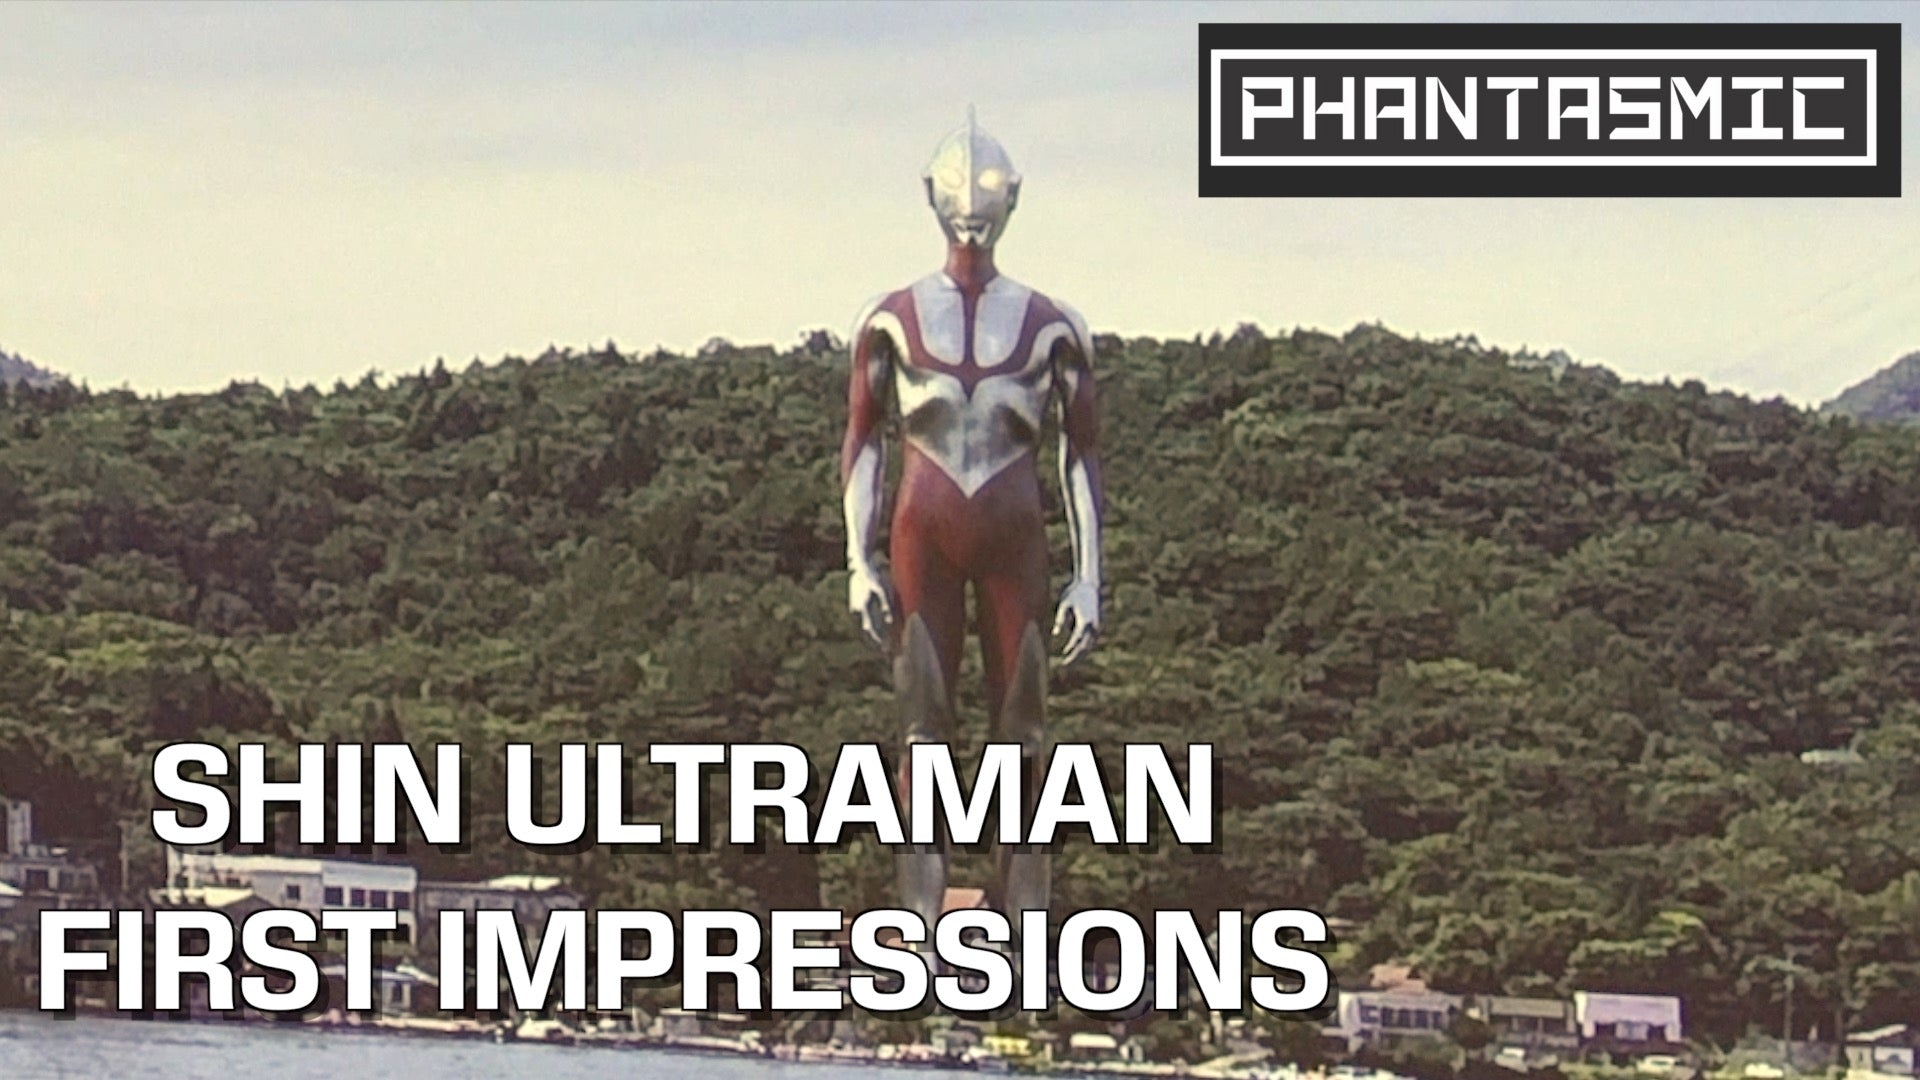 Shin Ultraman: Phantasmic First Impressions